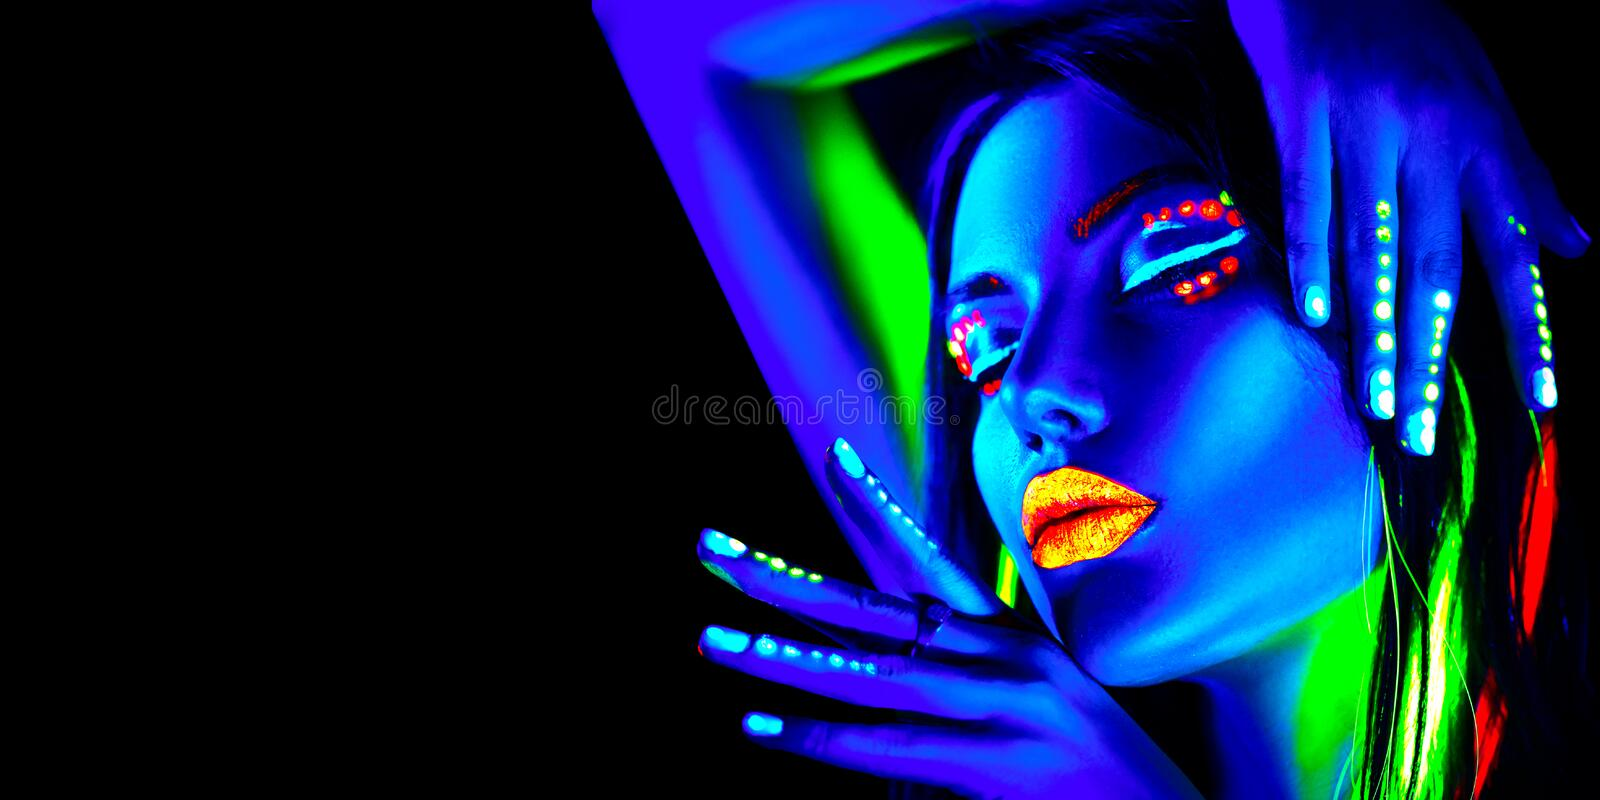 Fashion model woman in neon light, portrait of beautiful model girl with fluorescent makeup, Body art design in UV royalty free stock photography